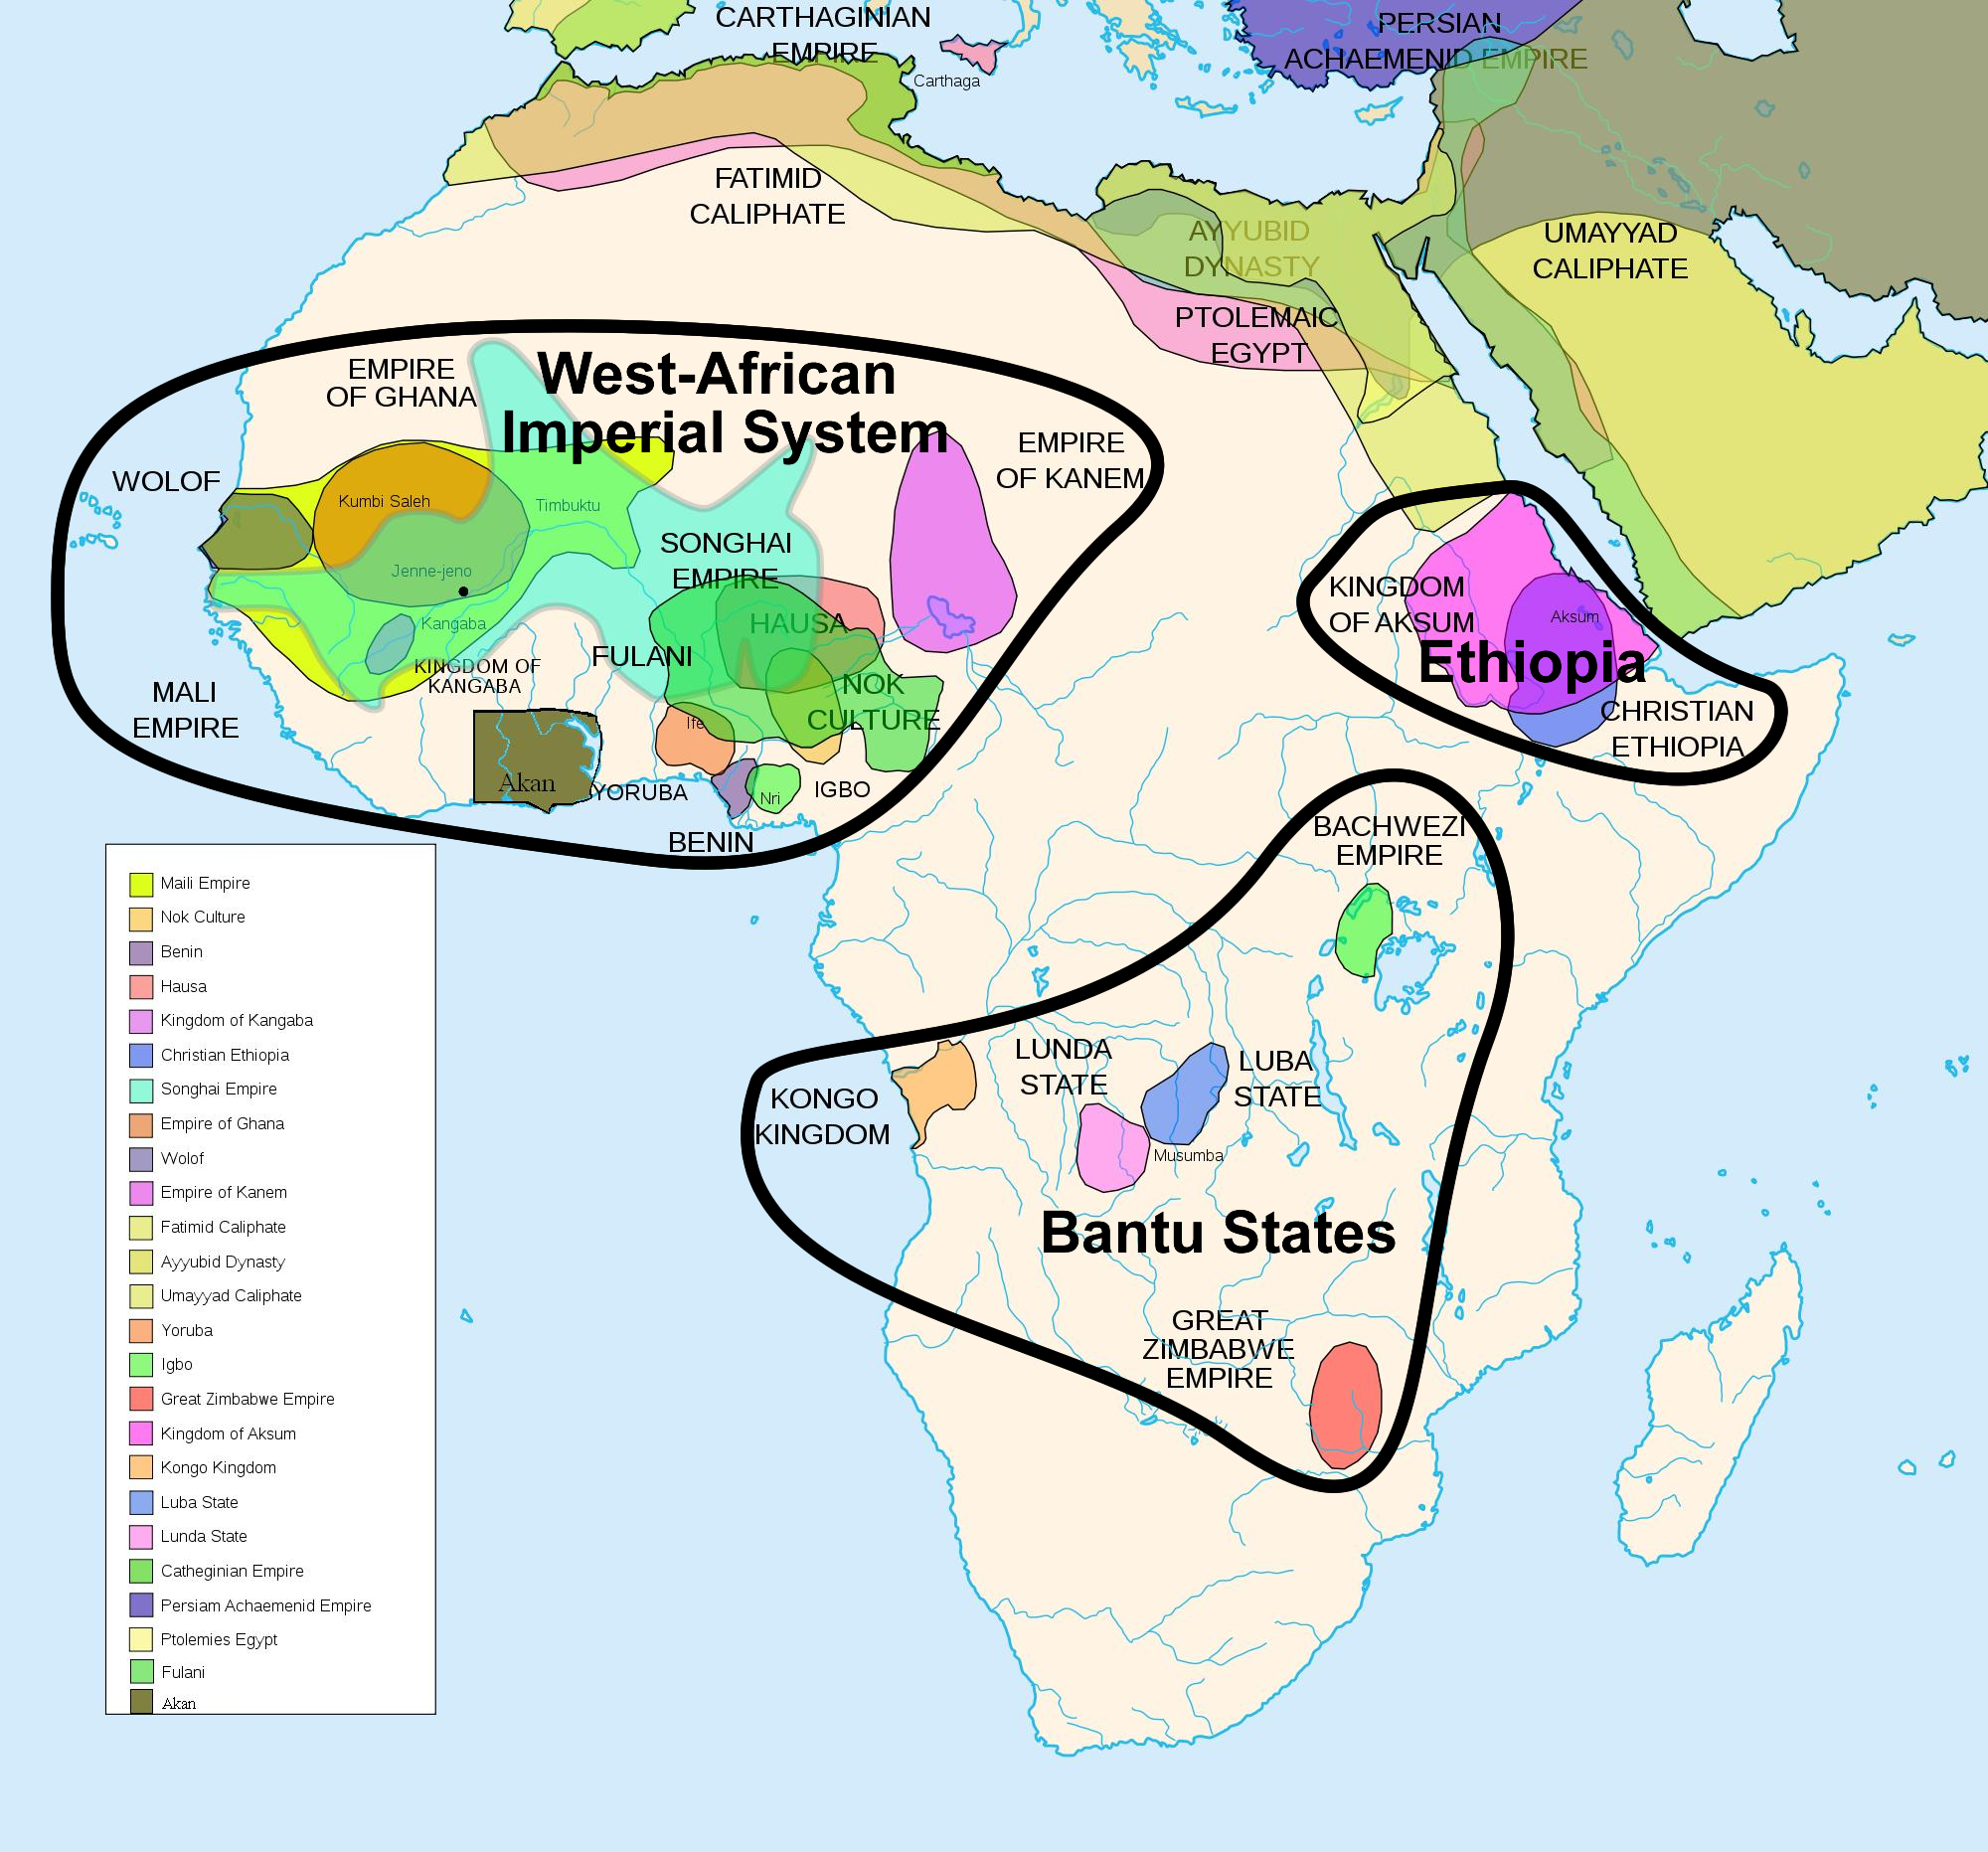 a history of empires in africa